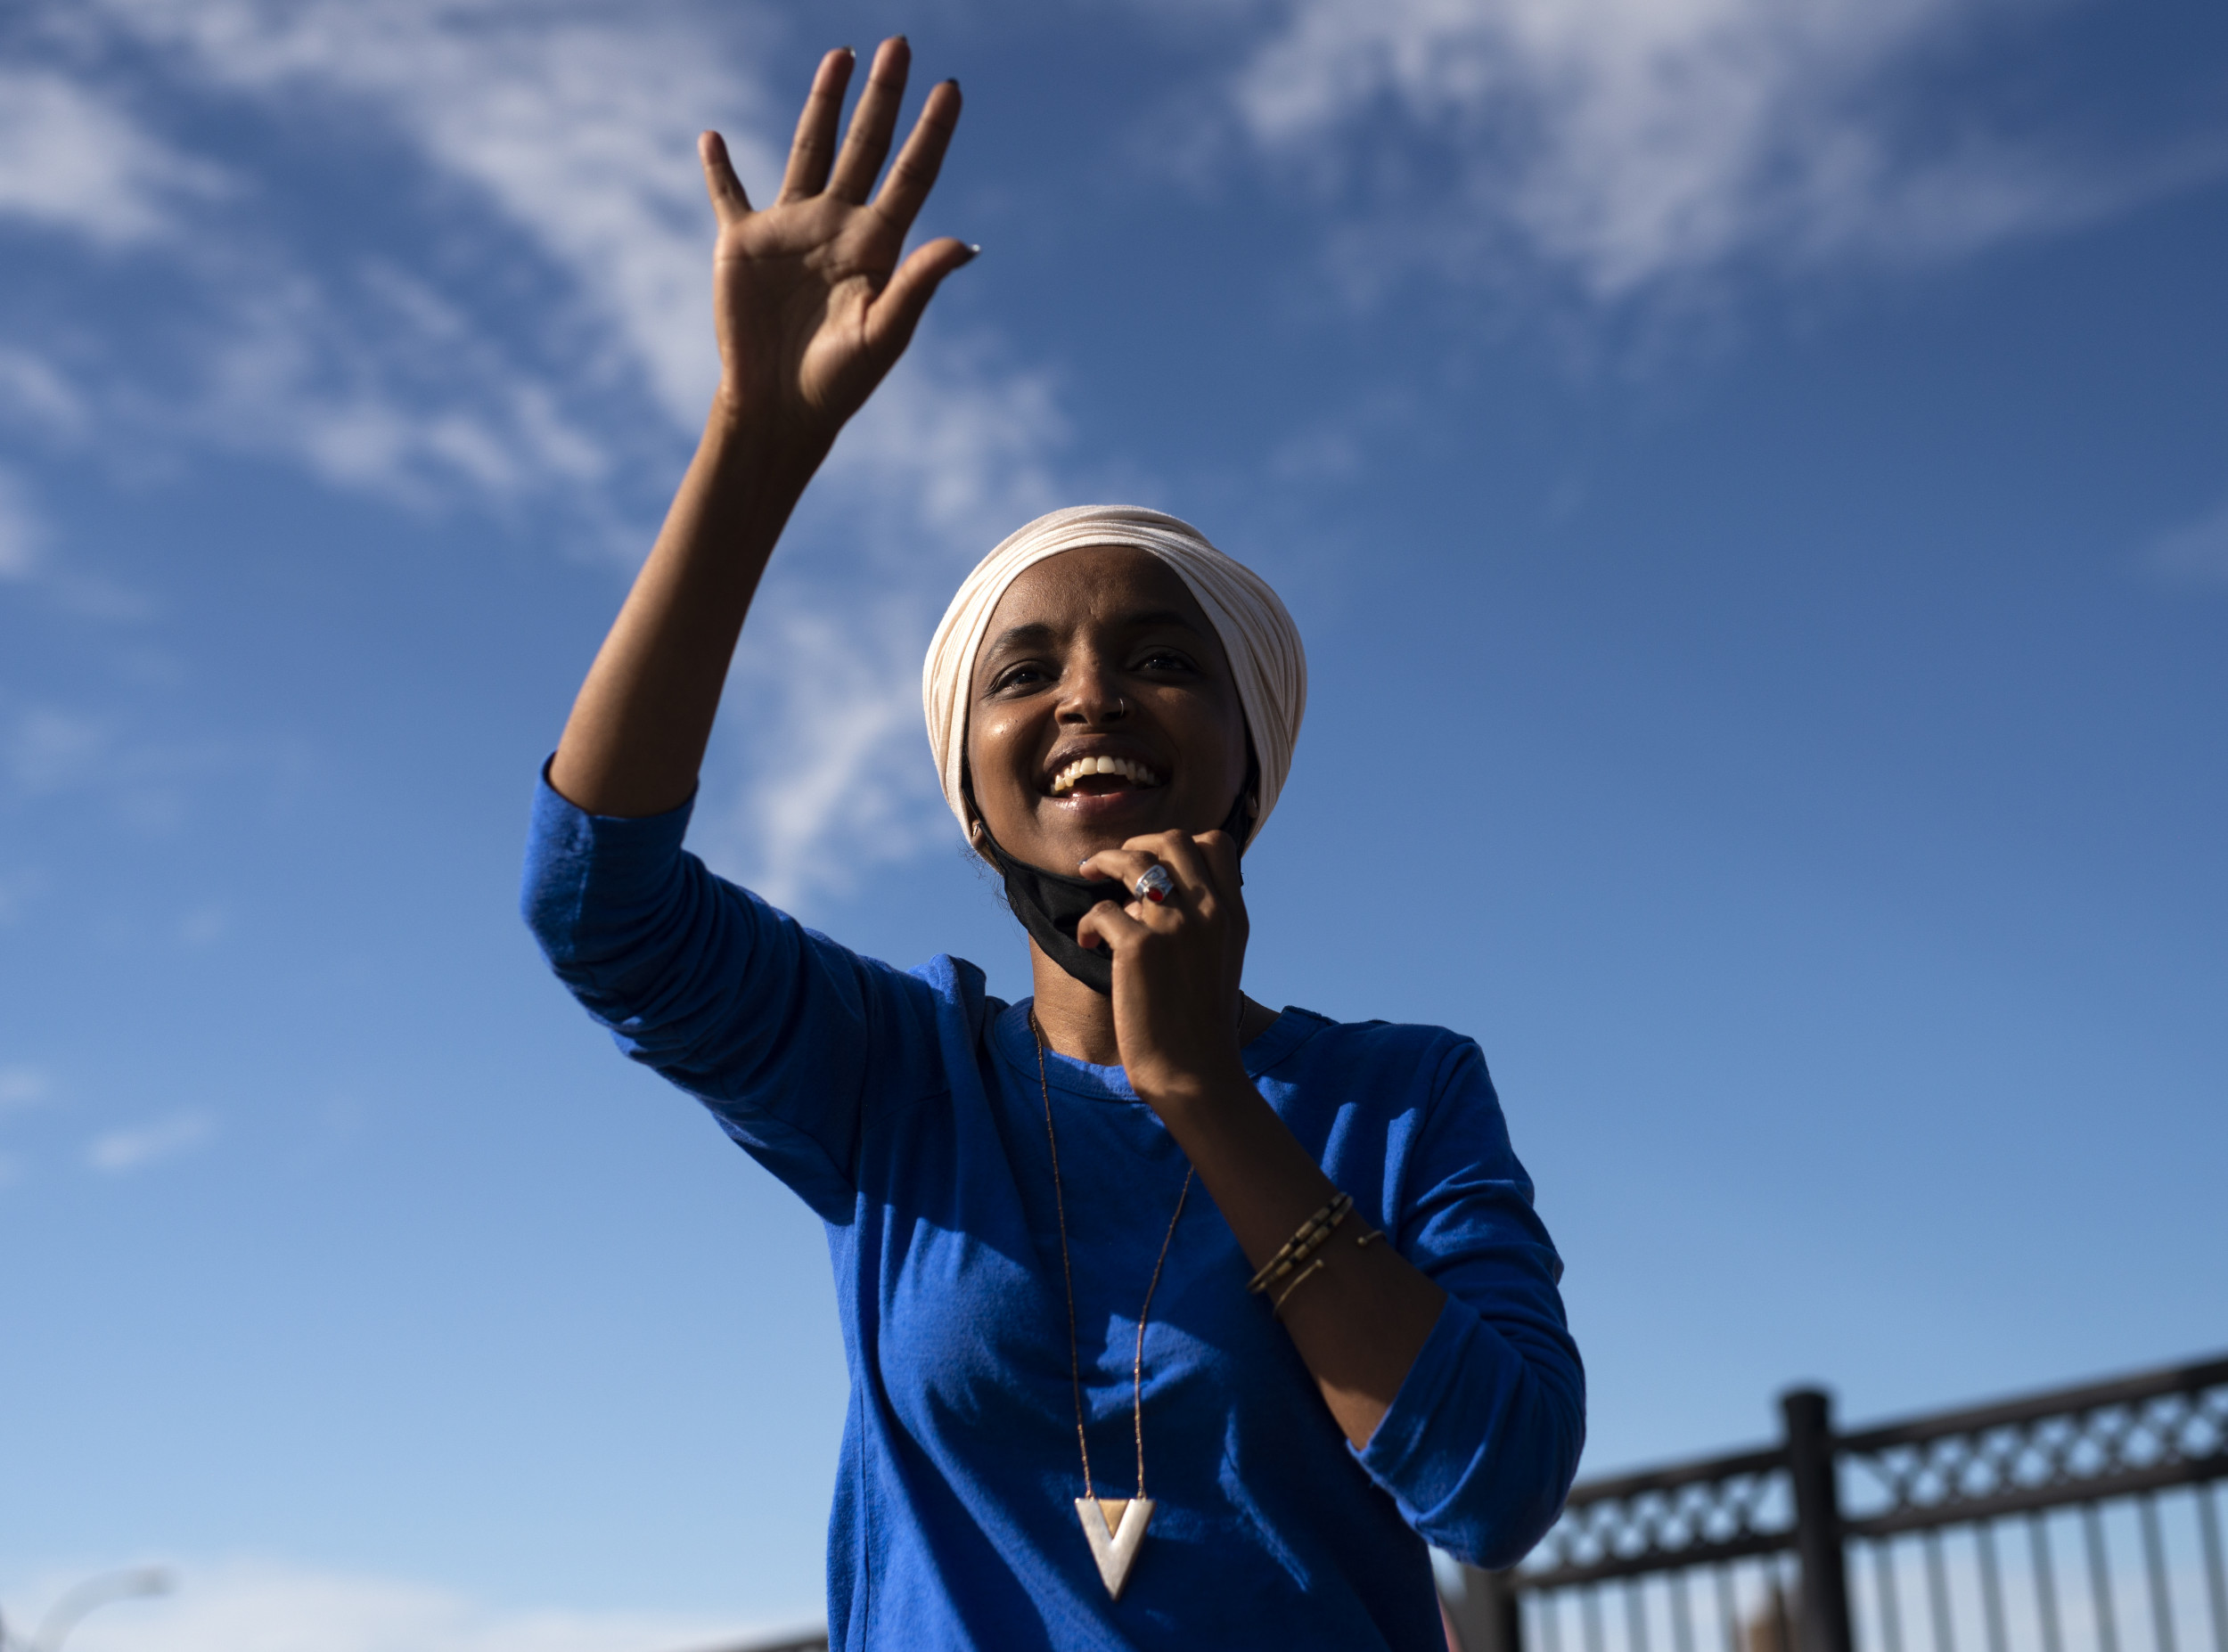 Donald Trump Accuses Ilhan Omar of Marrying Her Brother, Coming into The United States Illegally